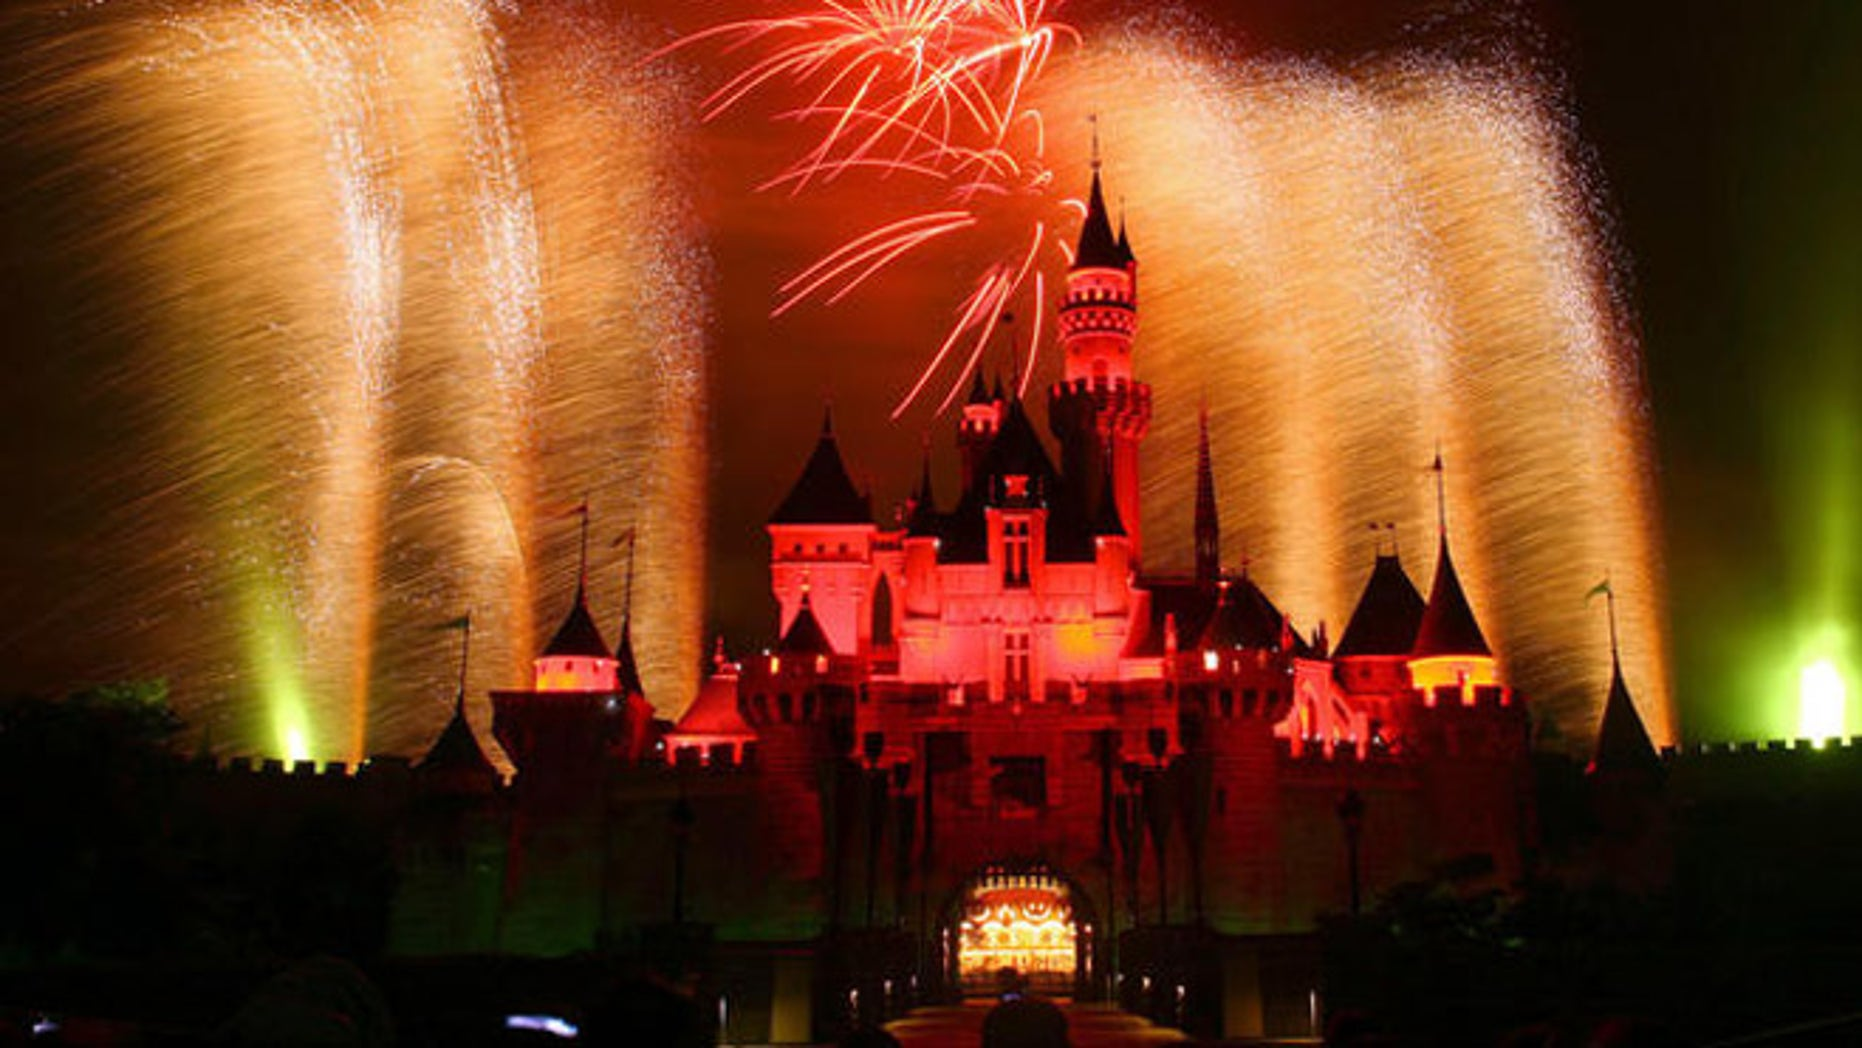 In this photo provided by Disney, fireworks light up the sky above Sleeping Beauty Castle at Hong Kong Disneyland Sept. 12, 2006 on the vacation resort's first birthday.  Hong Kong Disneyland opened Sept. 12, 2005.  (AP Photo/Disney, Gary Kwok) **NO SALES**